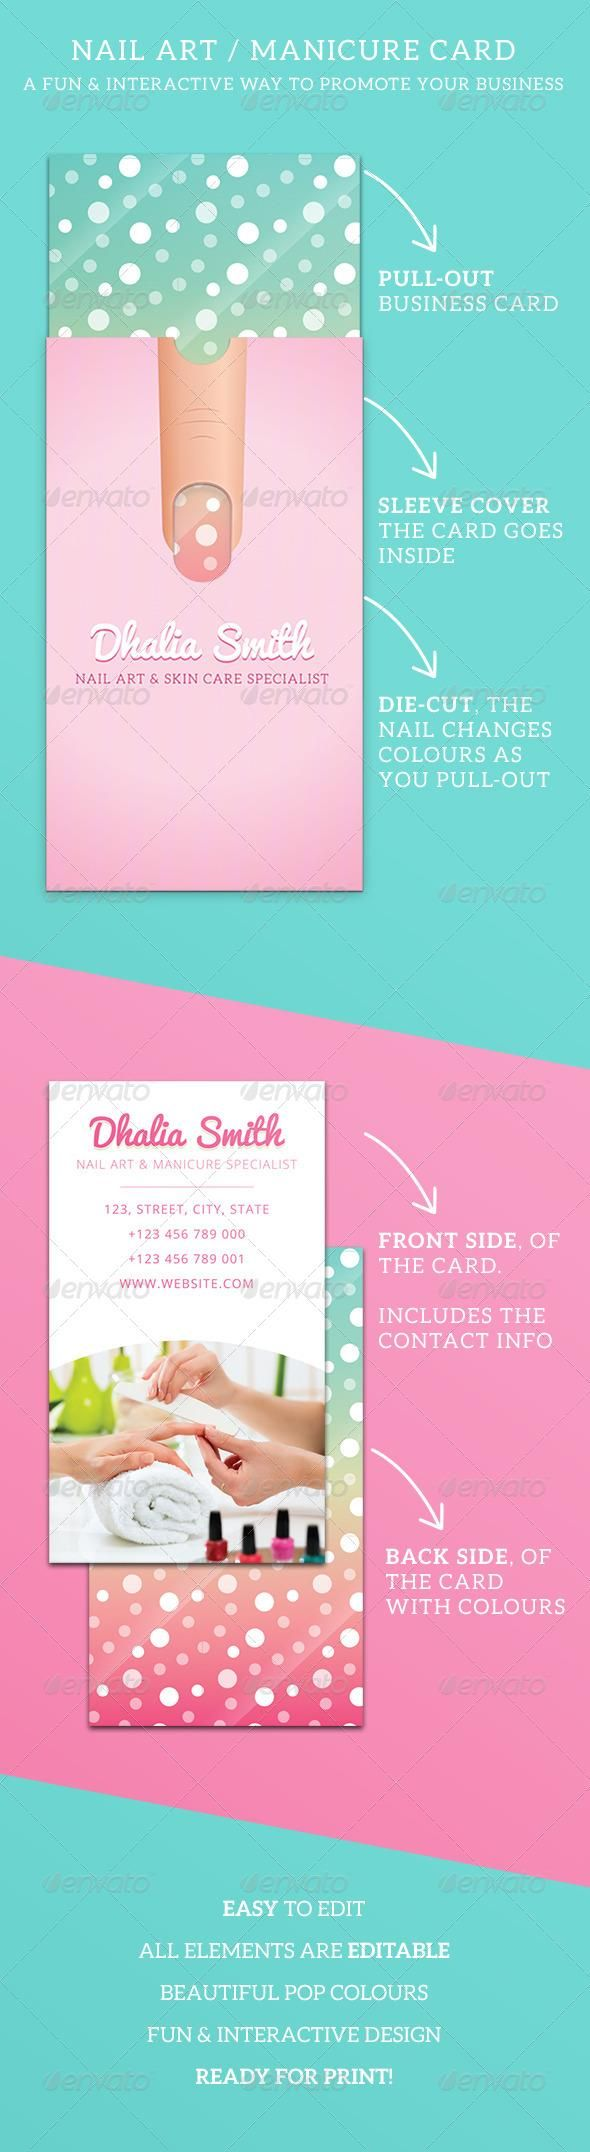 Nail Art/Manicure Business Card with Sleeve | Business cards ...